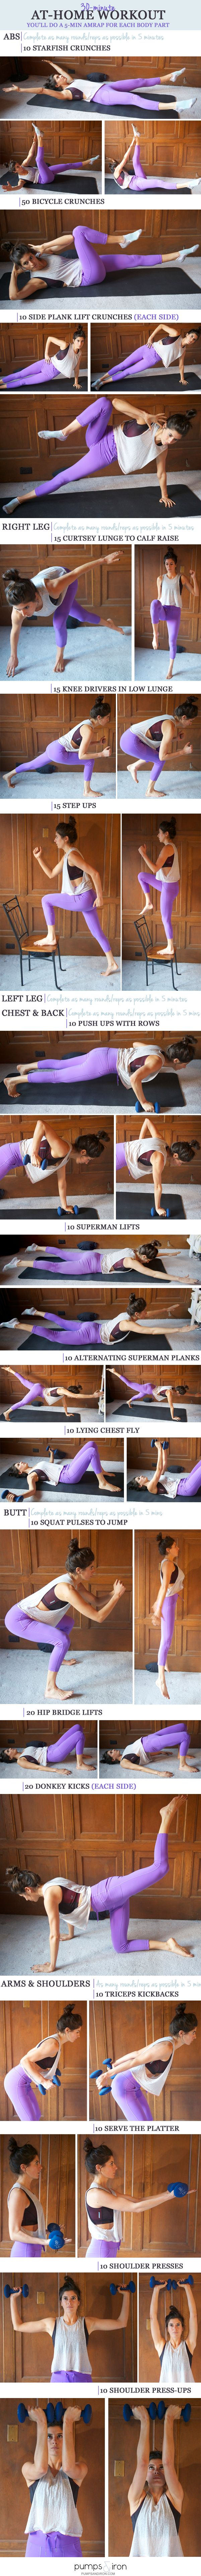 30-Minute At-Home Workout -- you'll spend 5 minutes on each body part: 30 Minute Full Body Workout, Full Body Workouts, Body Parts, At Home Workouts, Full Body At Home Workout, Work Out, Ab Workouts, Athomeworkout, 30 Minute Workout